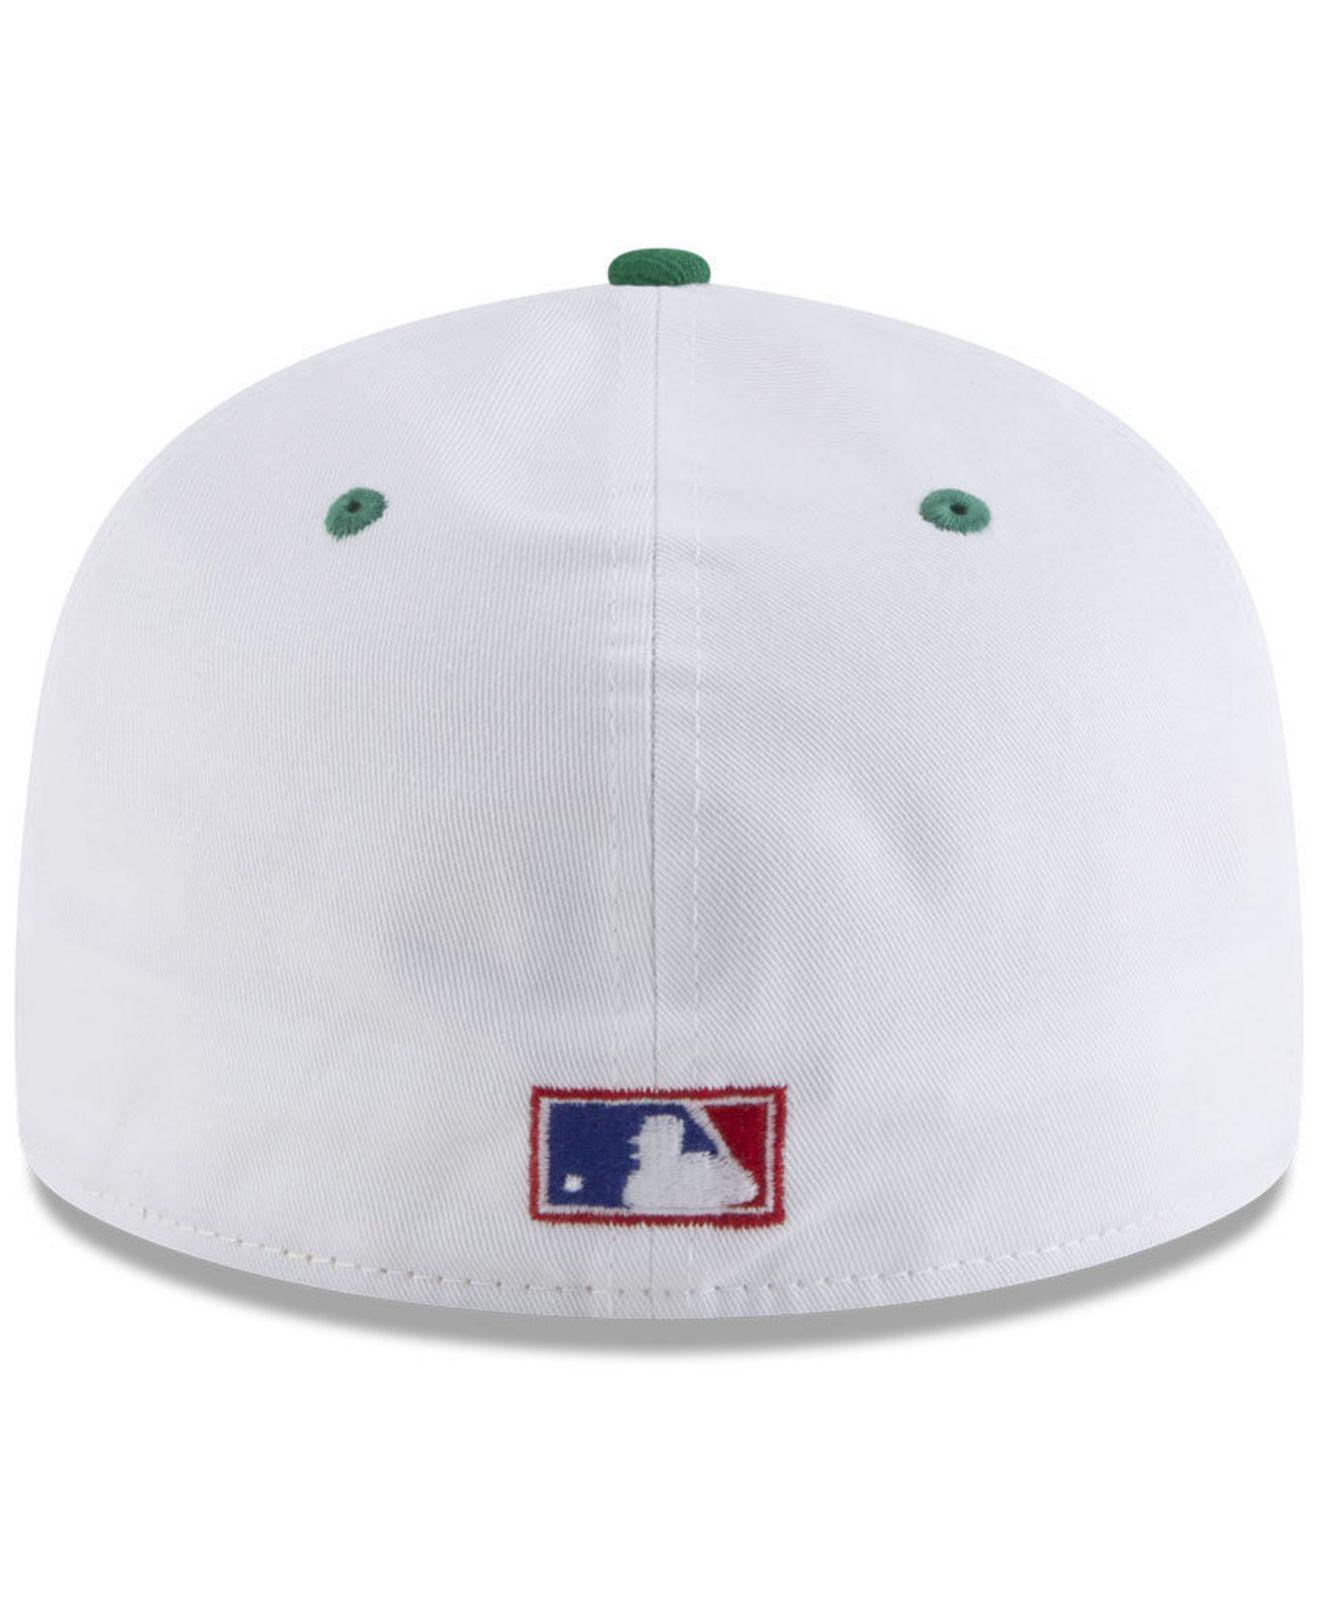 new style 4a632 94d77 ... release date milwaukee brewers retro diamond 59fifty fitted cap for men  lyst. view fullscreen 2370a